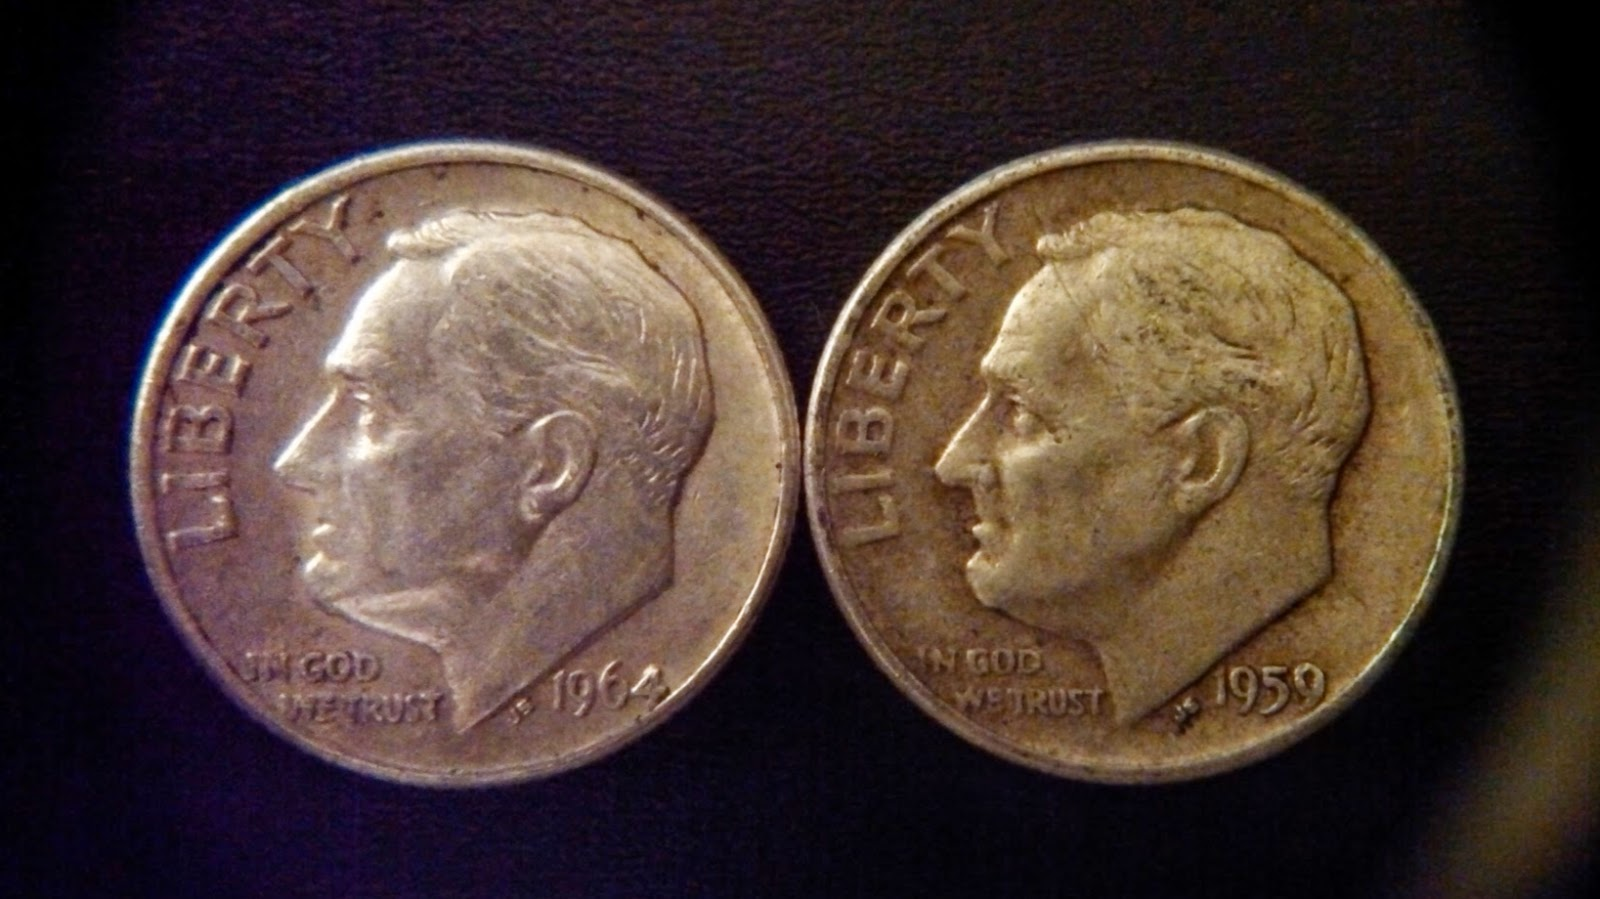 1964 and 1959 silver dimes found coin roll hunting